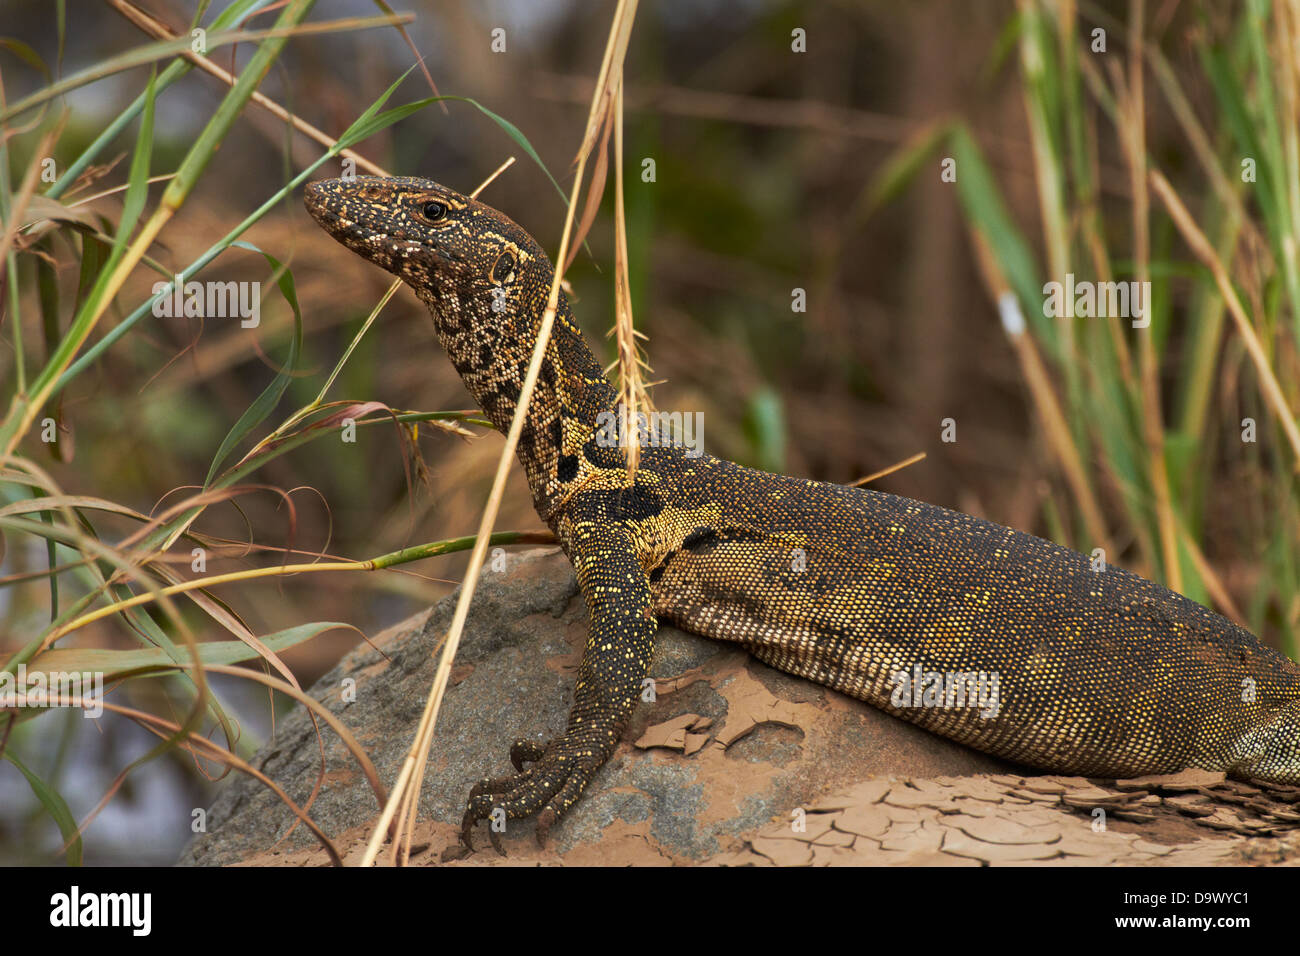 Nile monitor (Varanus niloticus), also called water leguaan, Kruger National Park, South Africa - Stock Image